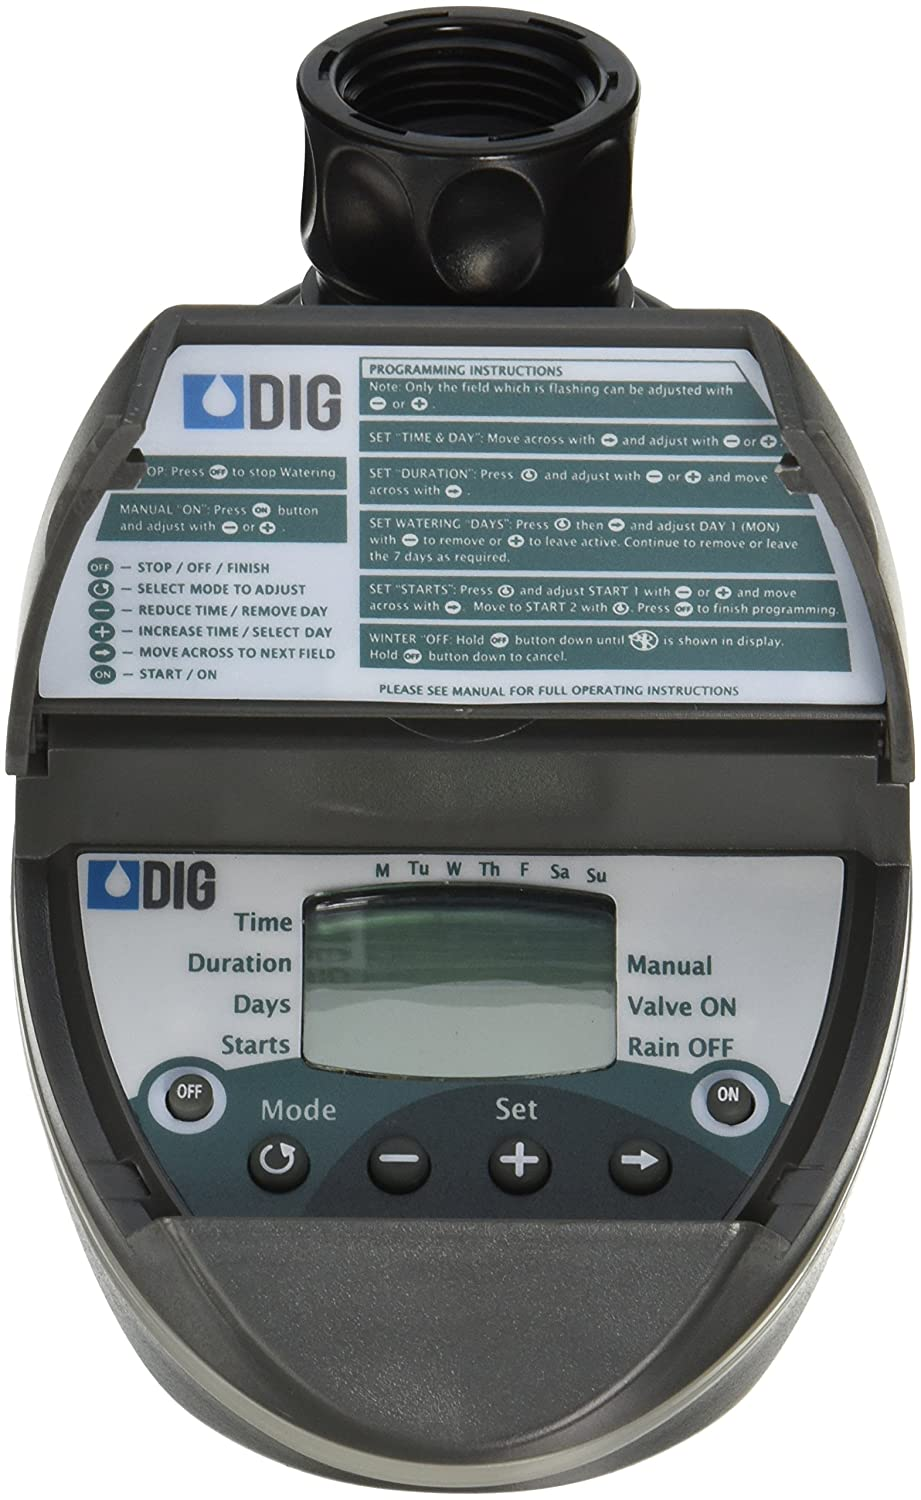 Dig Corporation Hose End Timer Clamshell 6.5  H X 4  W X 6  D